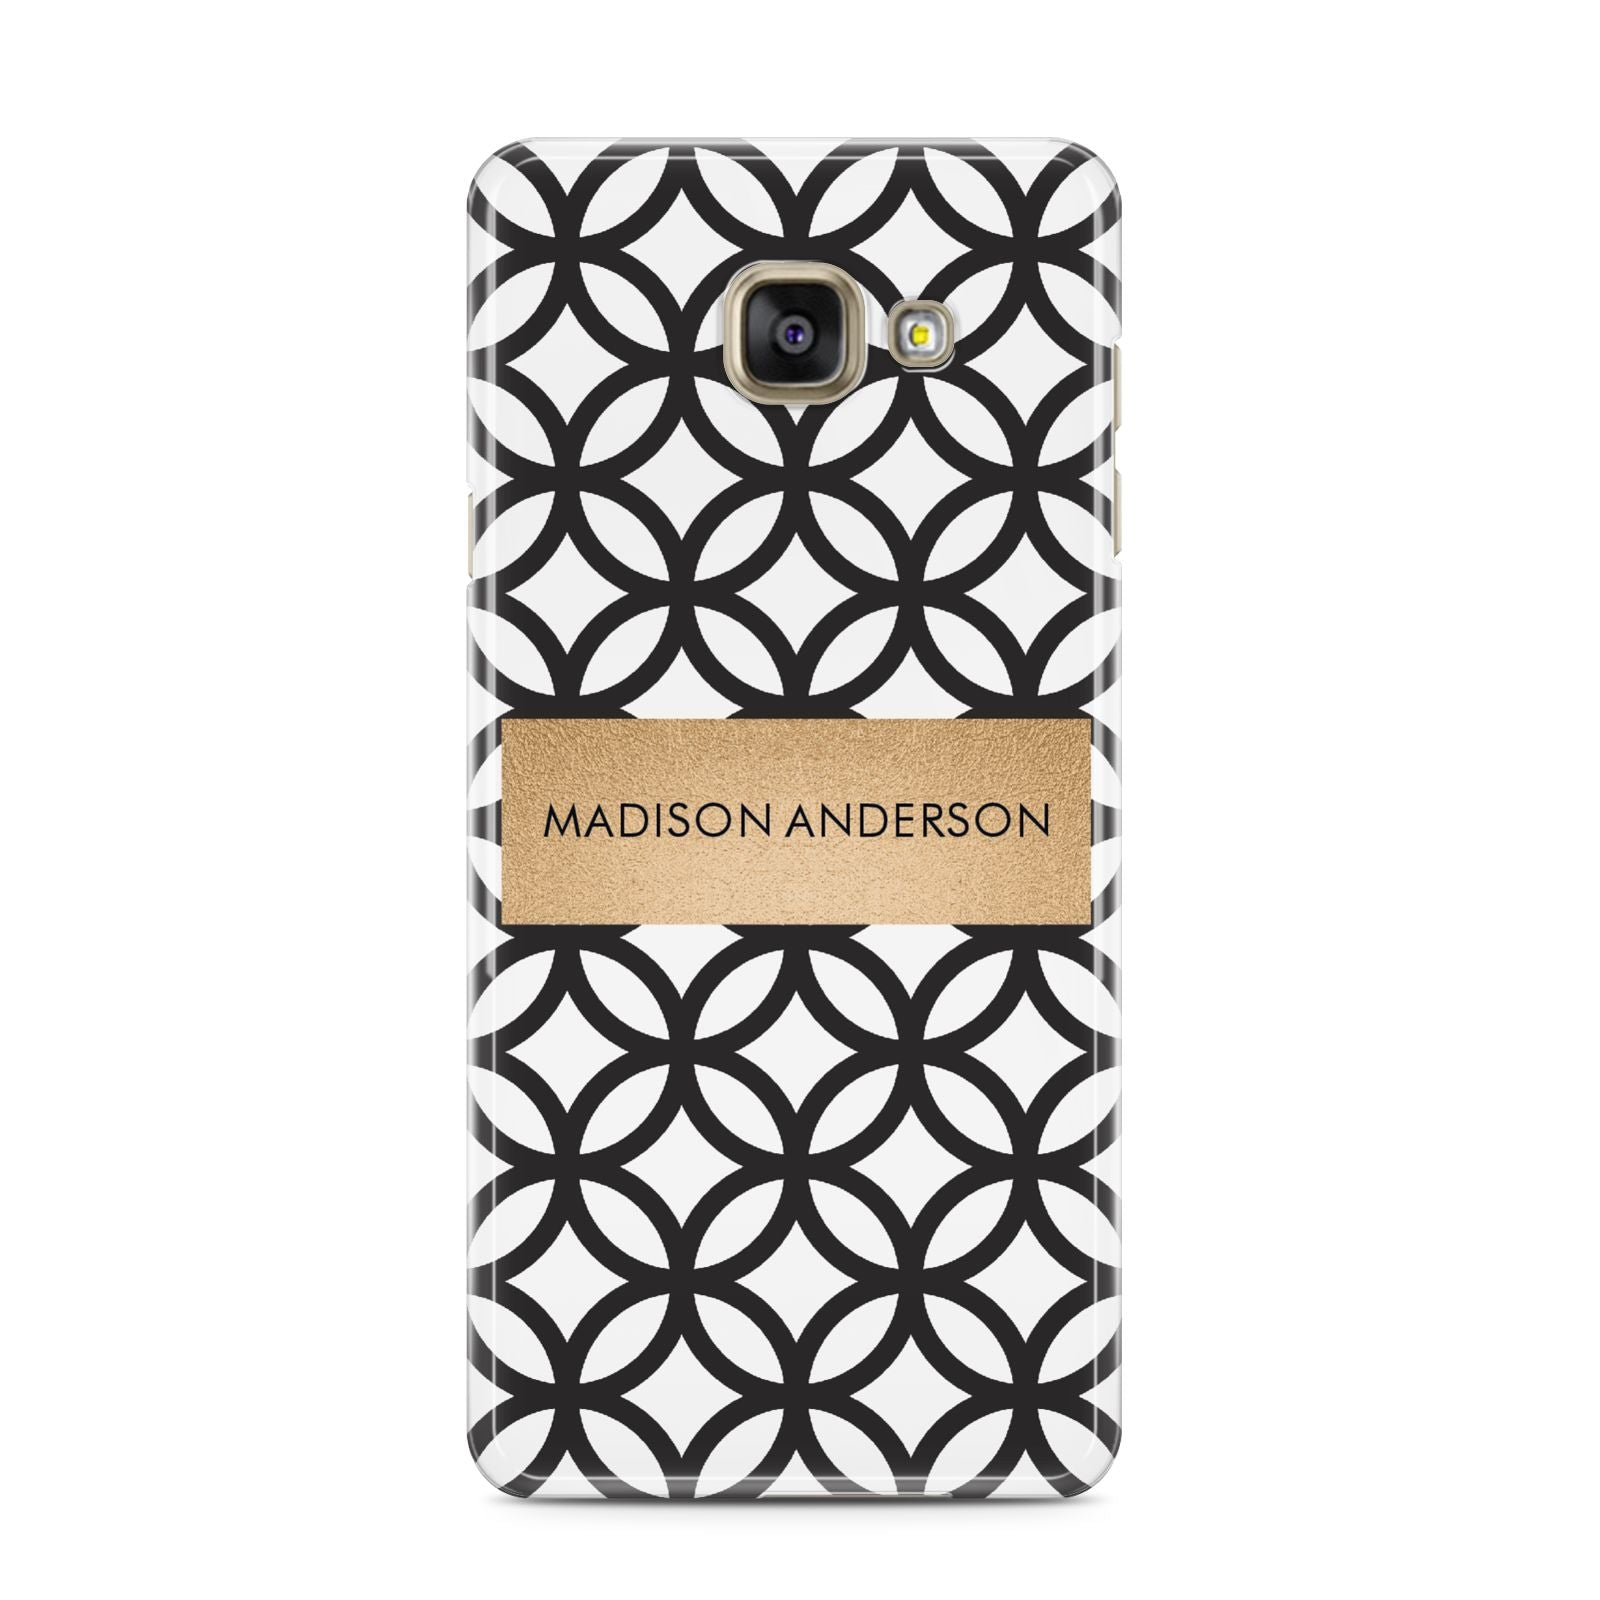 Personalised Geometric Name Or Initials Custom Samsung Galaxy A3 2016 Case on gold phone